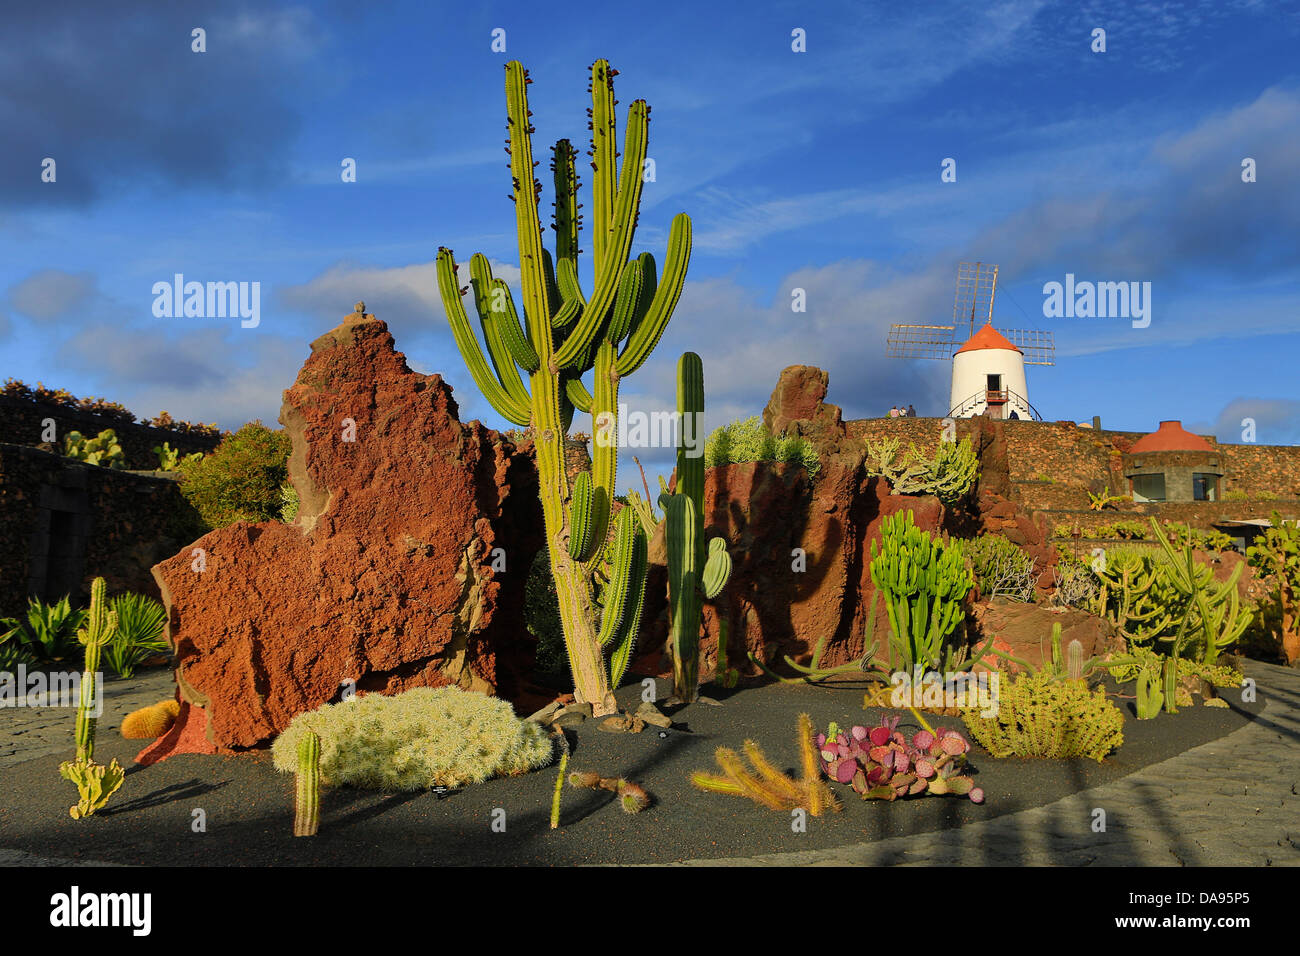 Spain, Europe, Canary Islands, Guatiza, Lanzarote, cactus, plants, garden, island, sunset, wind mill - Stock Image